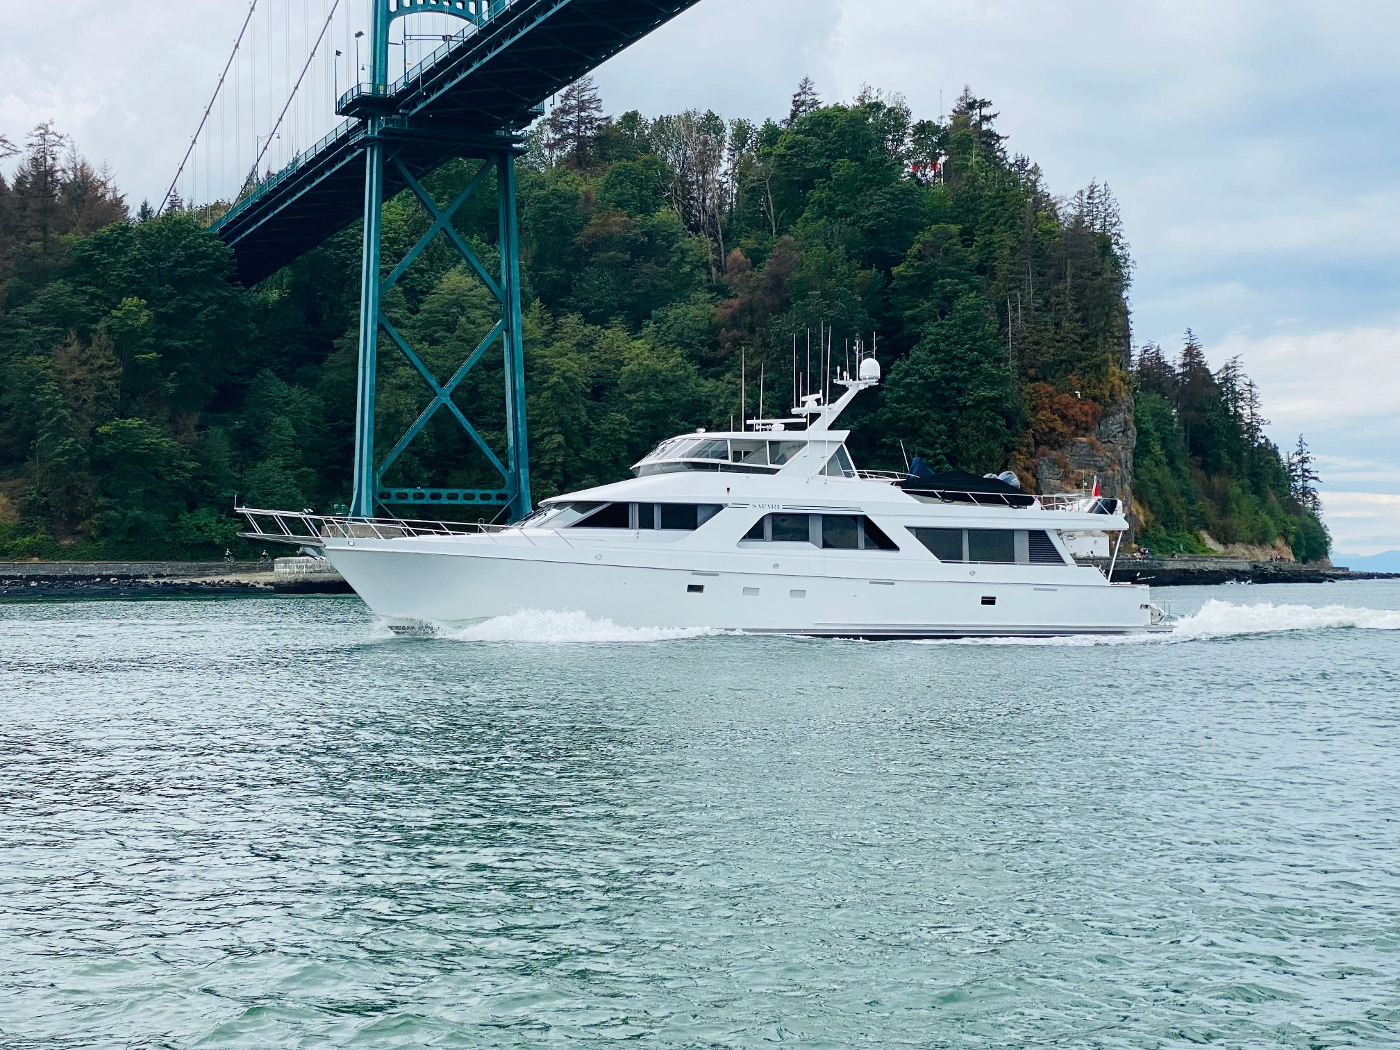 1997 Nordlund Motoryacht, In Vancouver Harbour